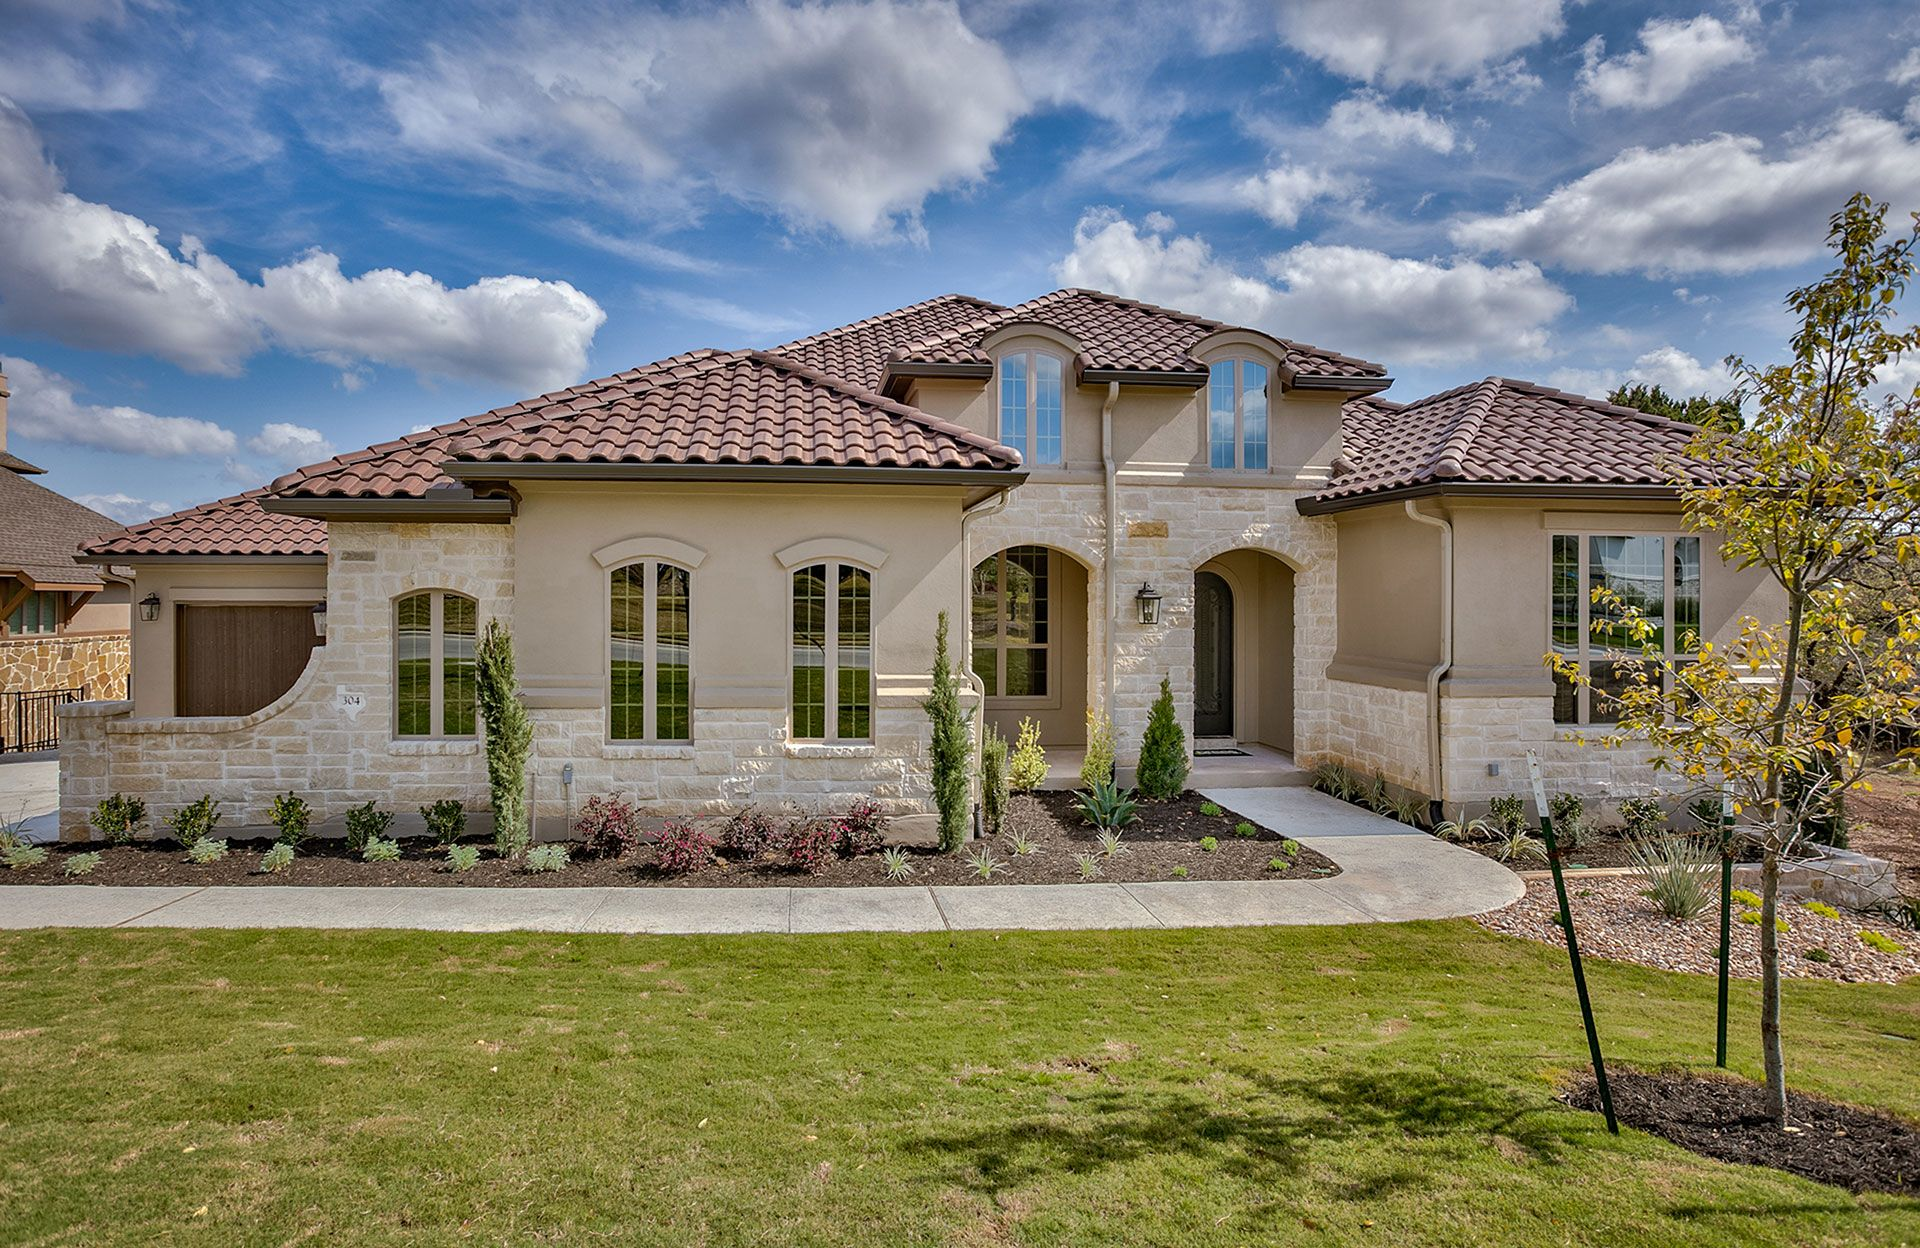 Single Family for Sale at Lauren Ii 304 Tempranillo Way Austin, Texas 78738 United States